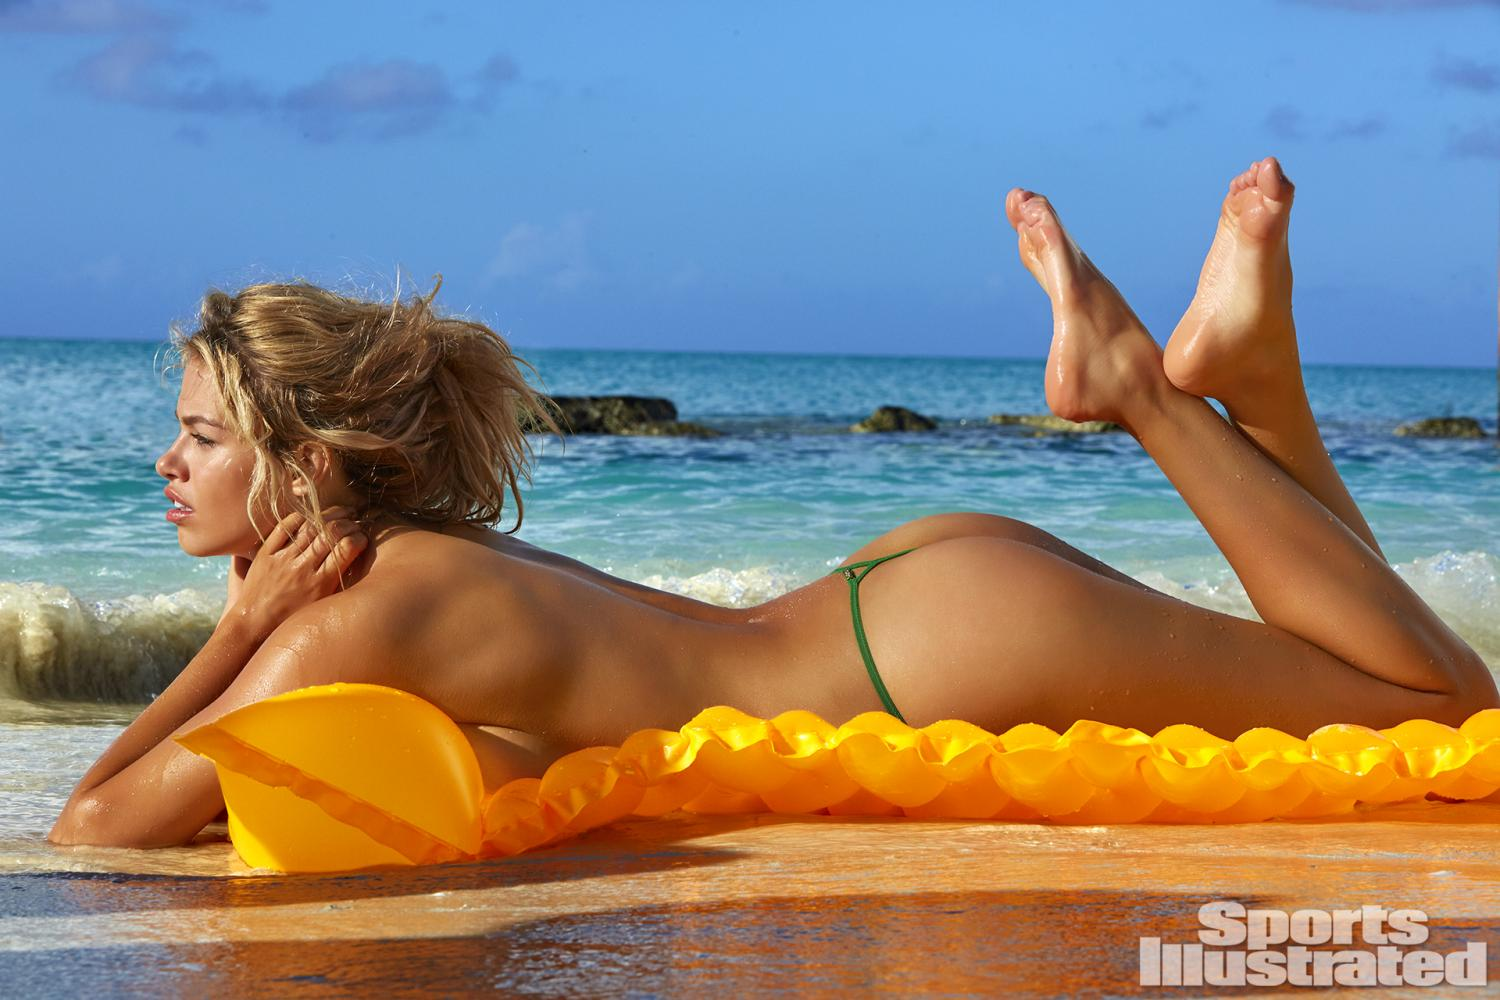 Hailey Clauson was photographed by James Macari in Turks & Caicos. Swimsuit by Ola Vida.